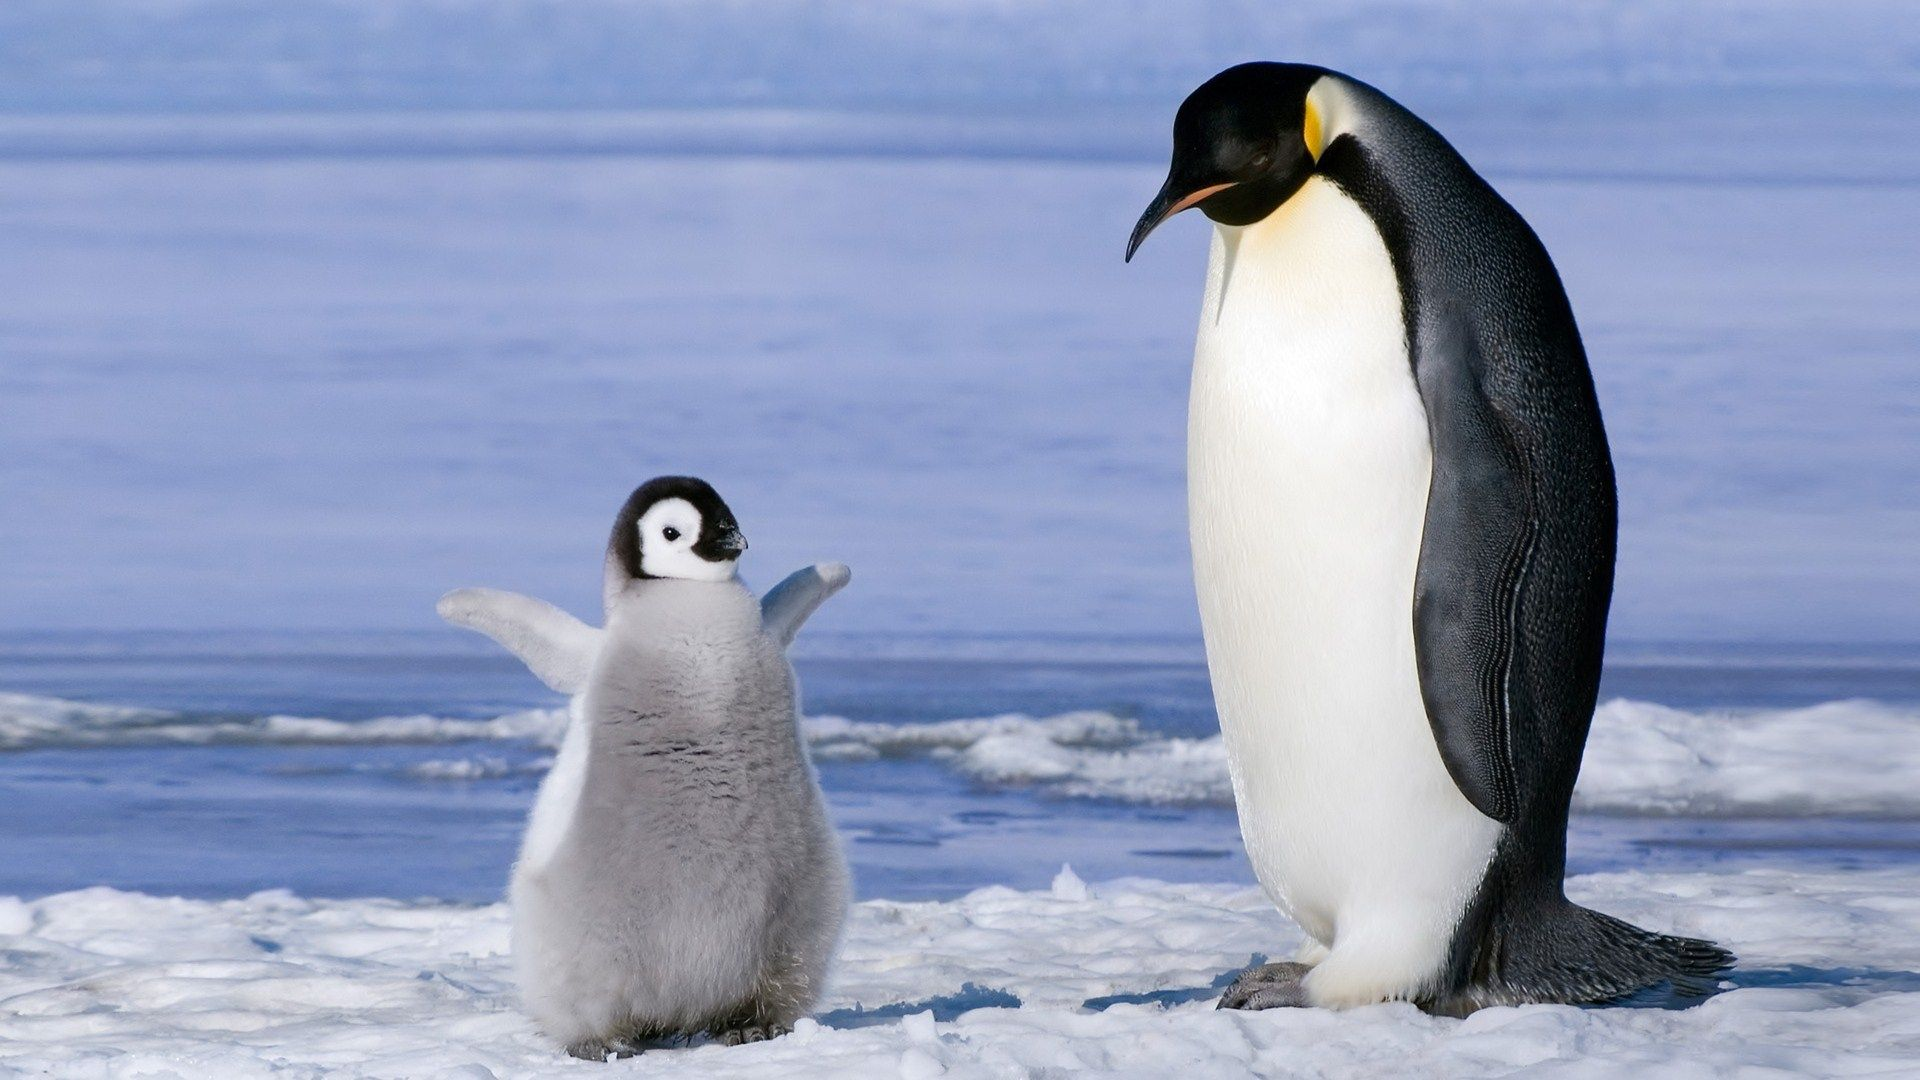 Emperor Penguin and Chick Wallpaper Penguin HD Wallpapers 1920x1080